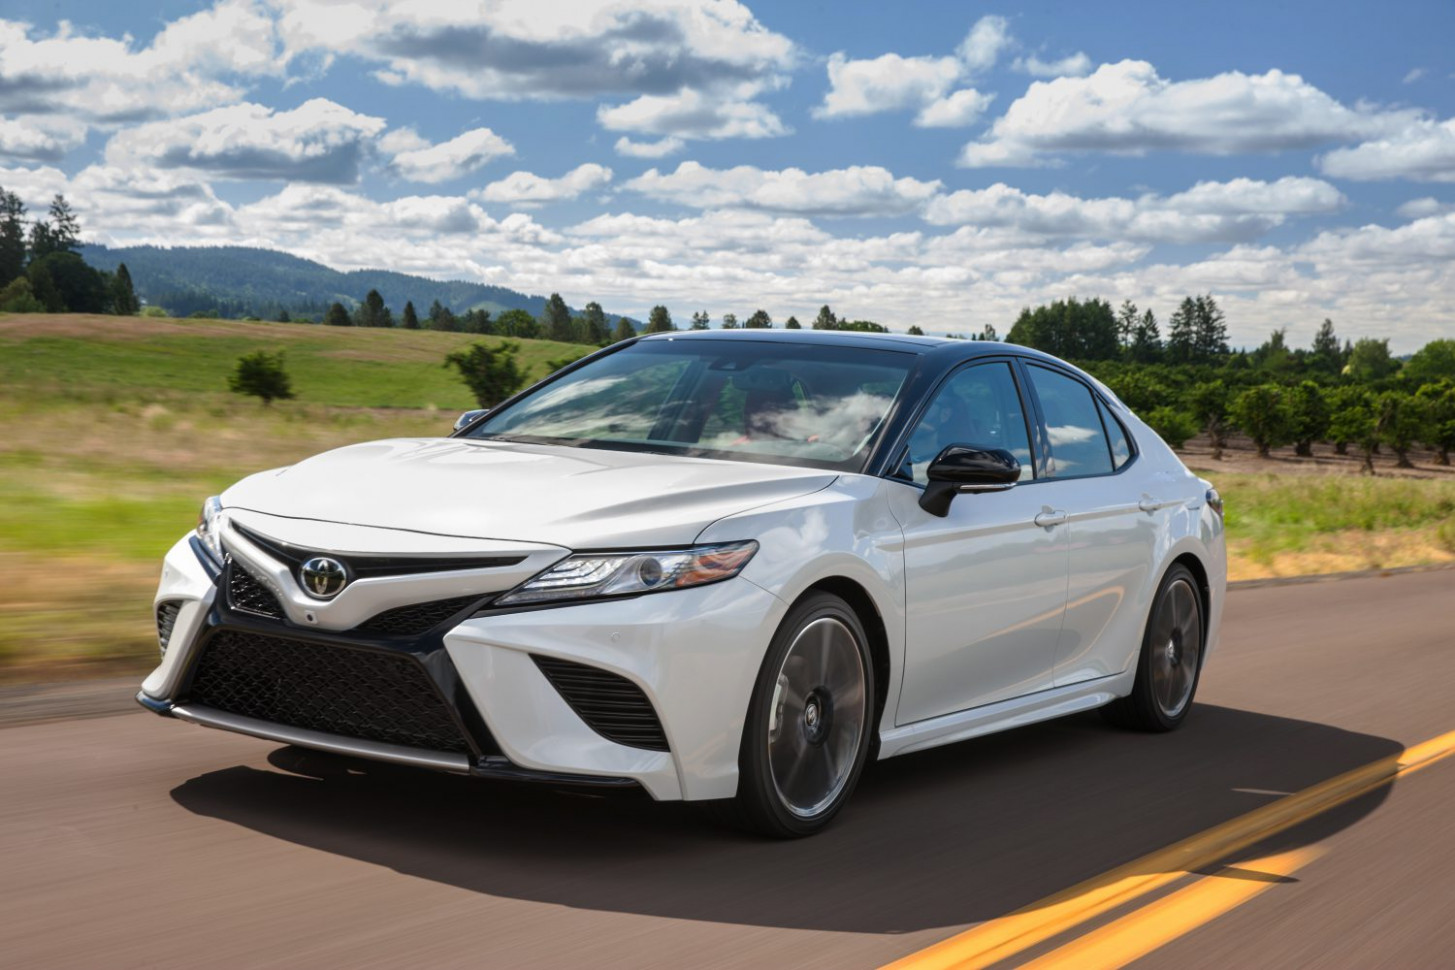 6 Toyota Camry Review, Ratings, Specs, Prices, and Photos - The ..